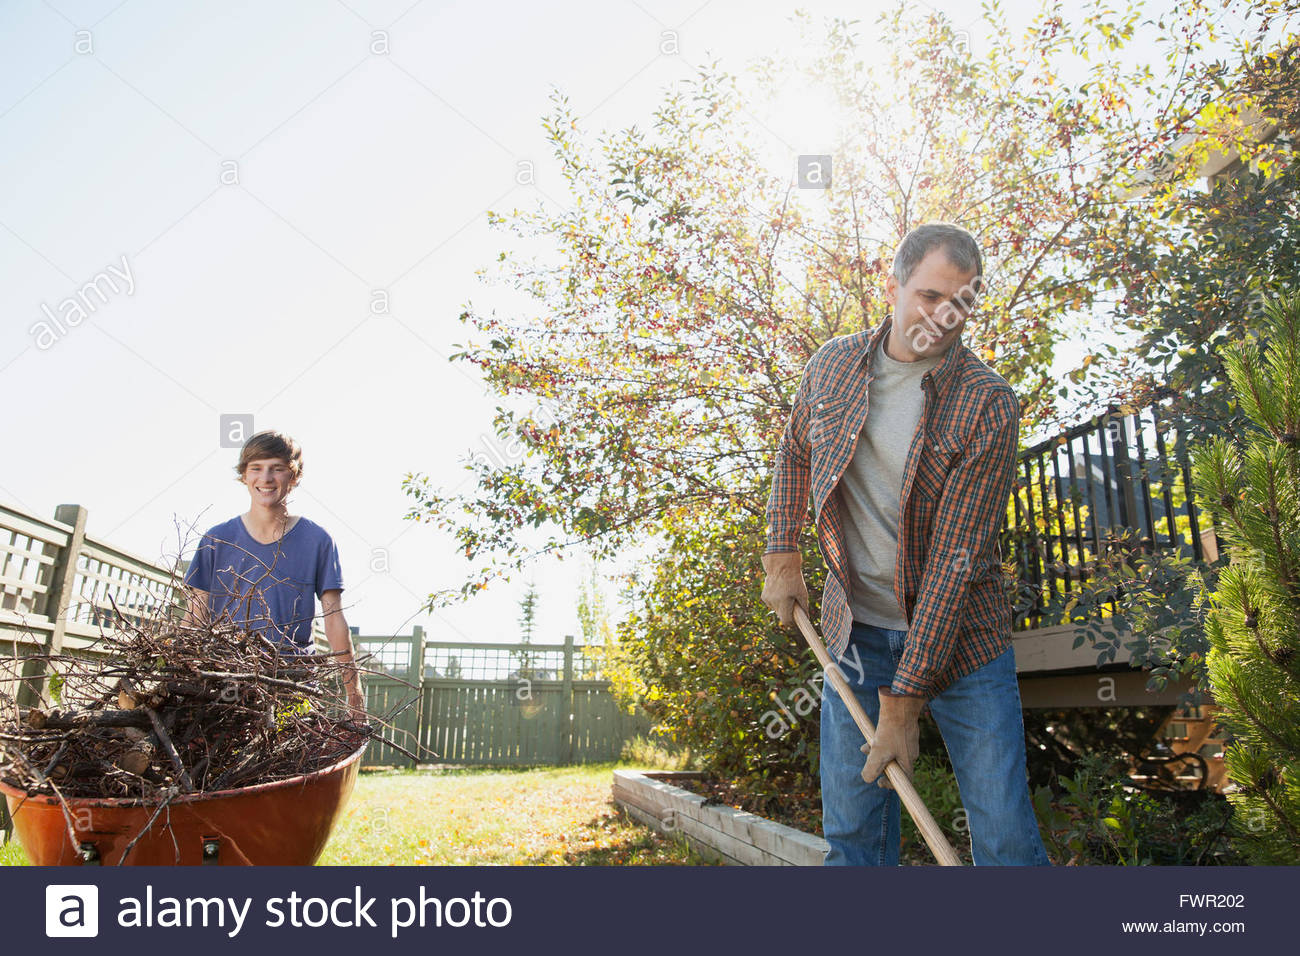 Father and son cleaning up yard - Stock Image